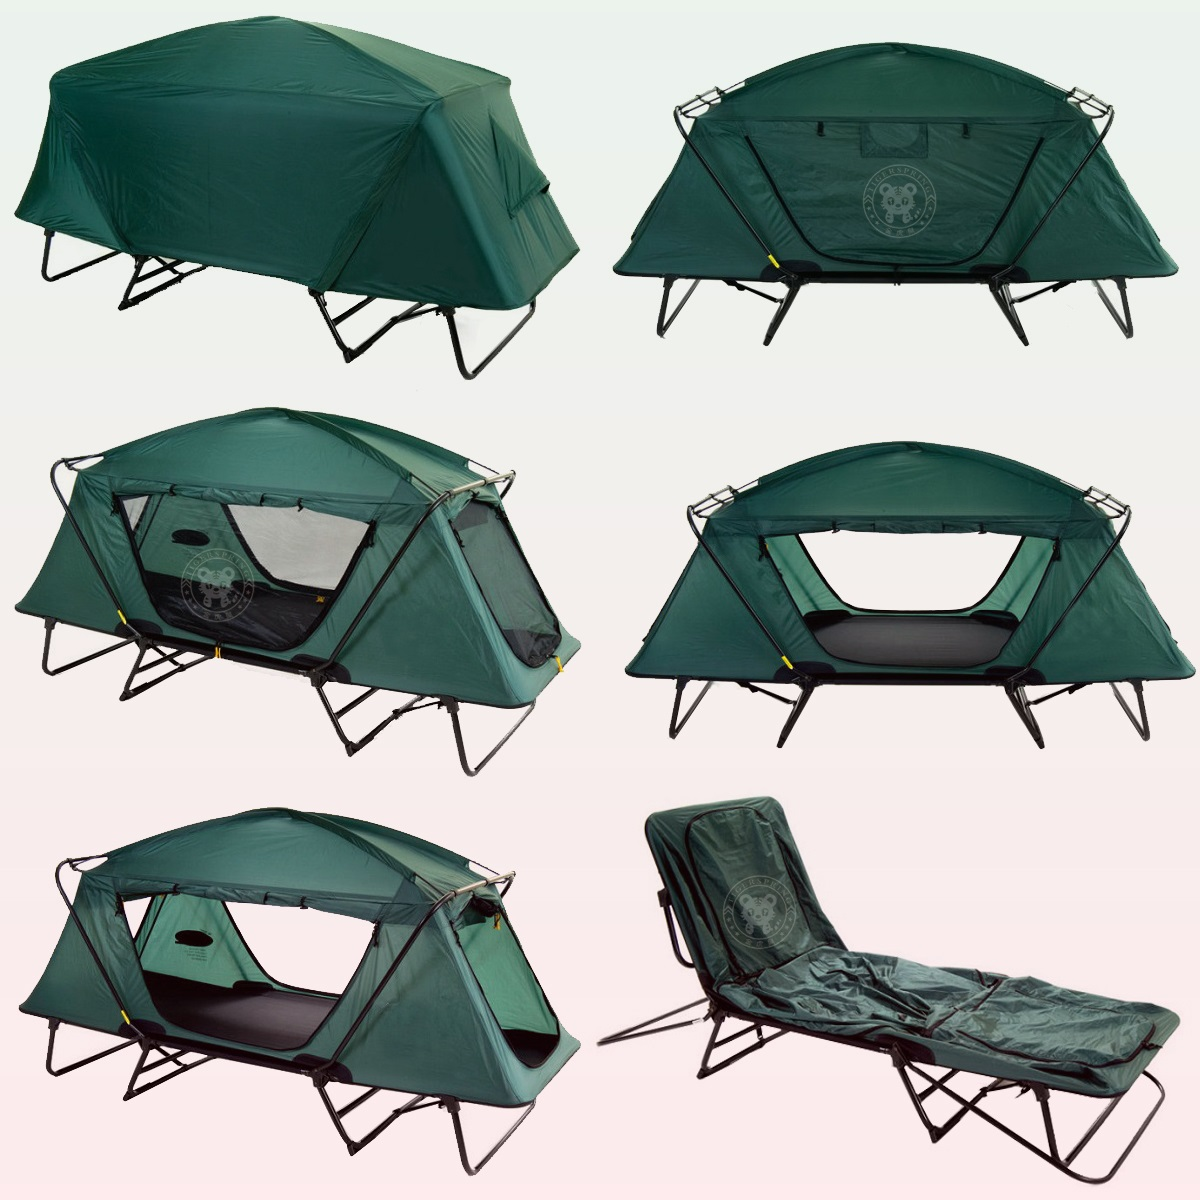 Tent Cot Tent Cot For Sale